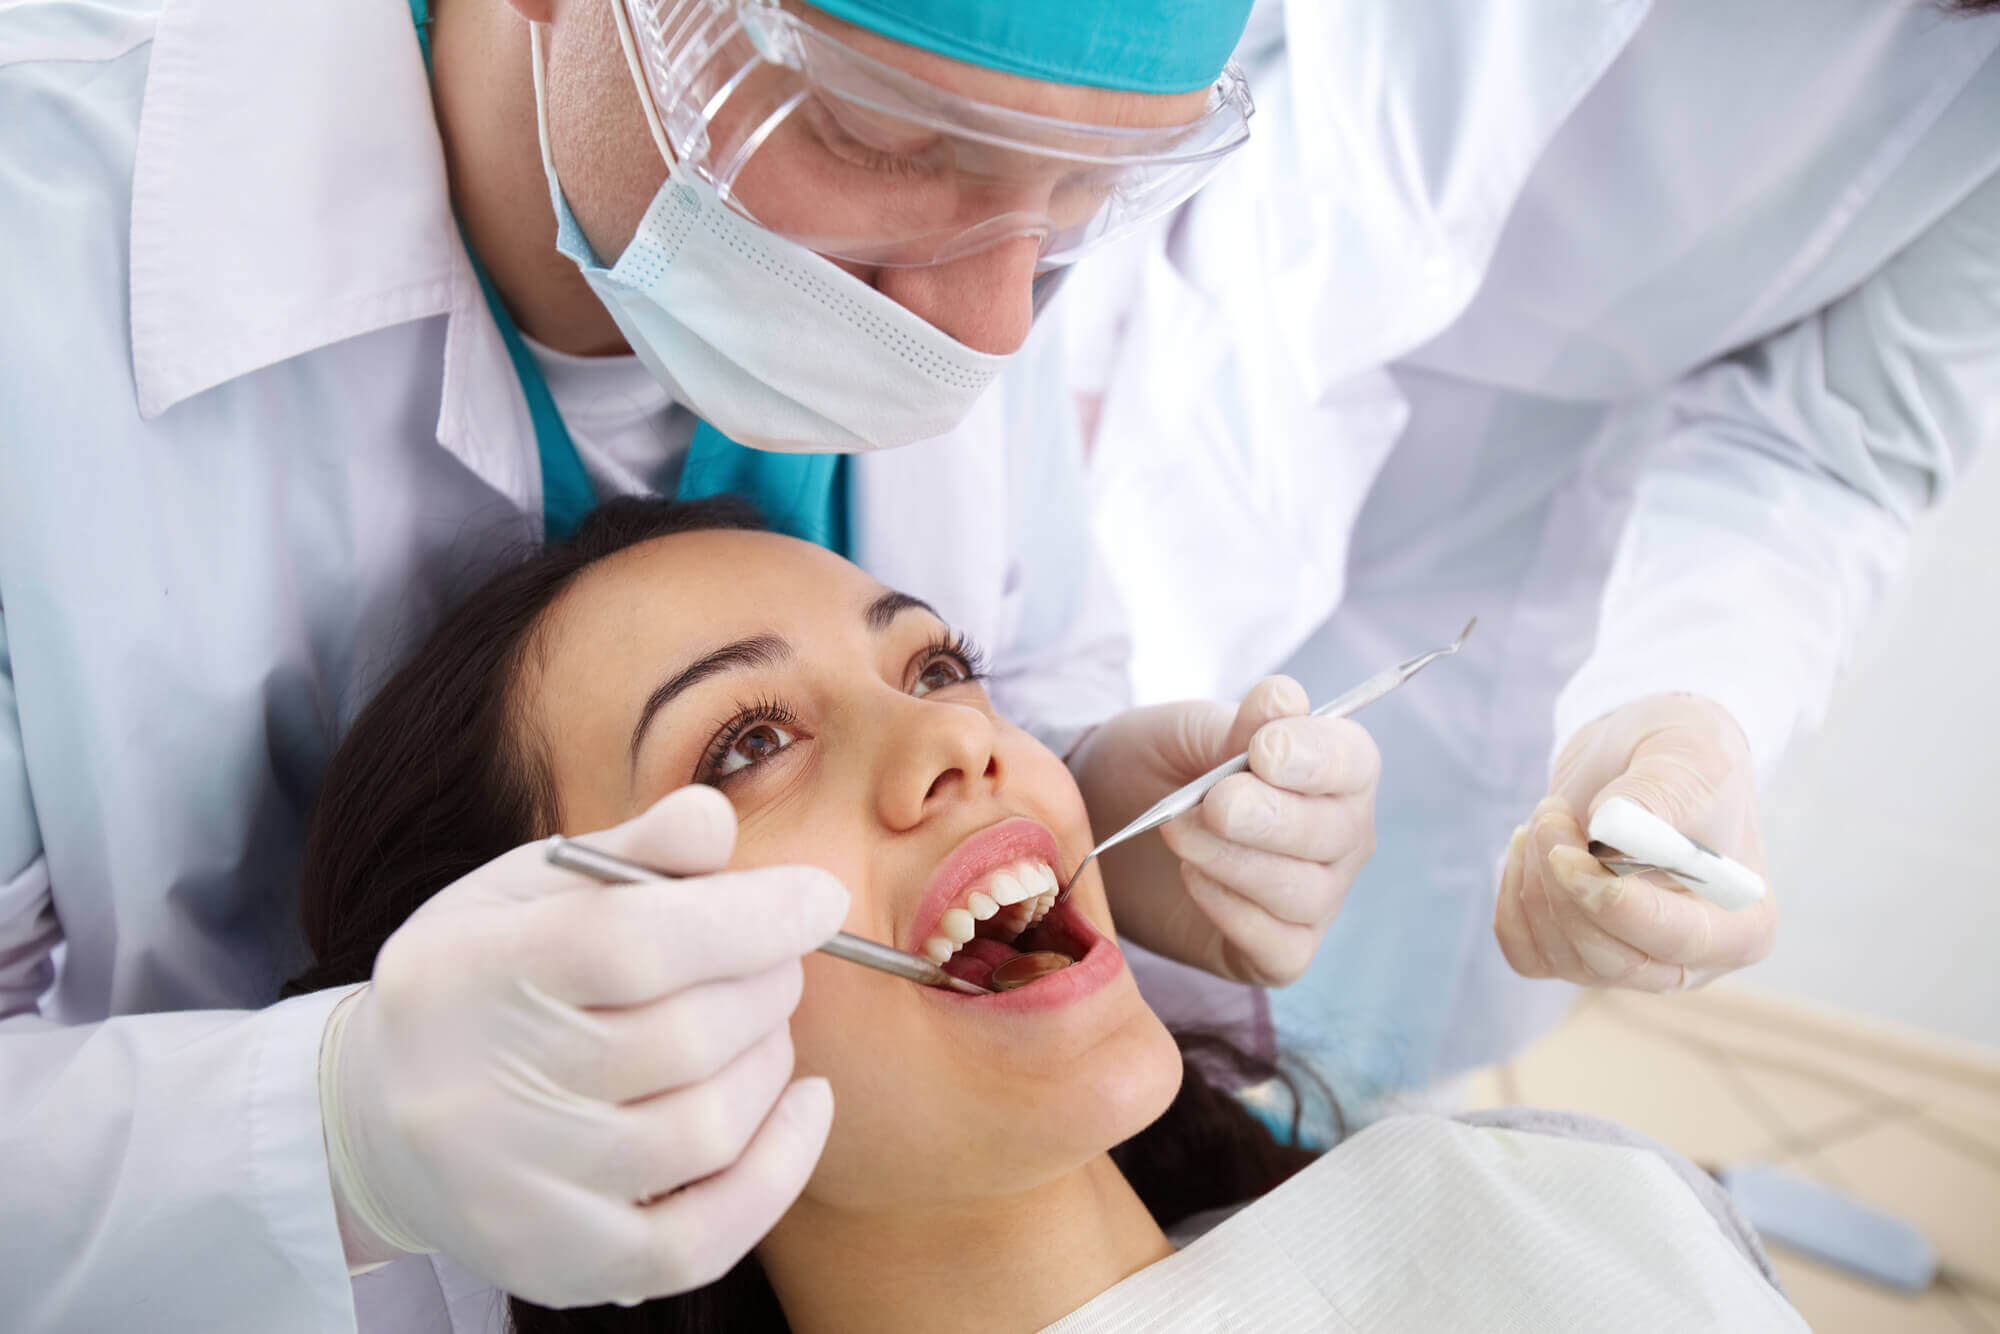 where is the best periodontist north miami?